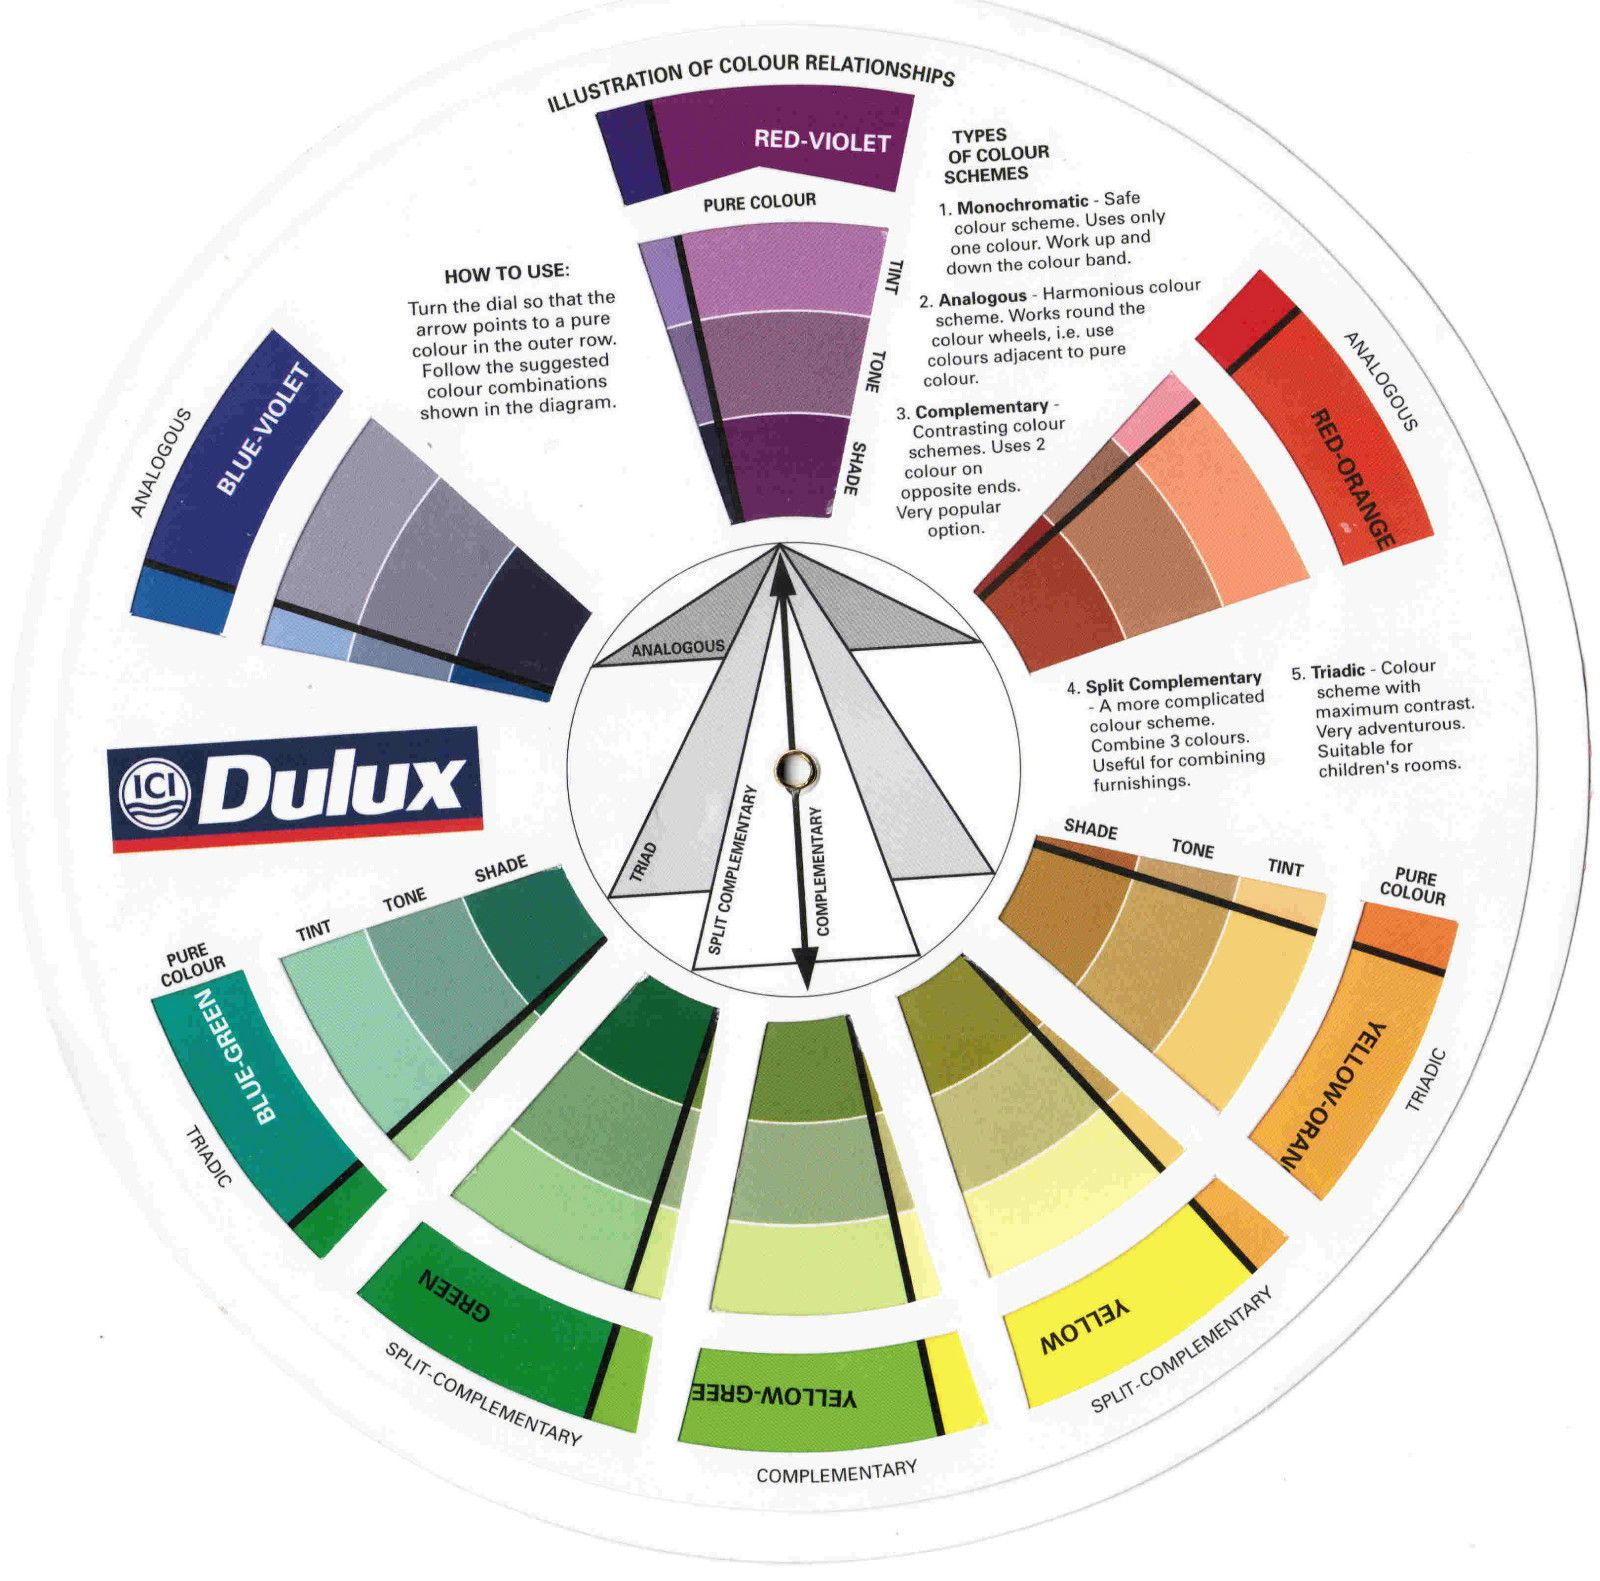 Color theory online games - Details About Ici Dulux Color Wheel Dulux Paint Colour Chart Akzo Nobel Home Makeover Painting